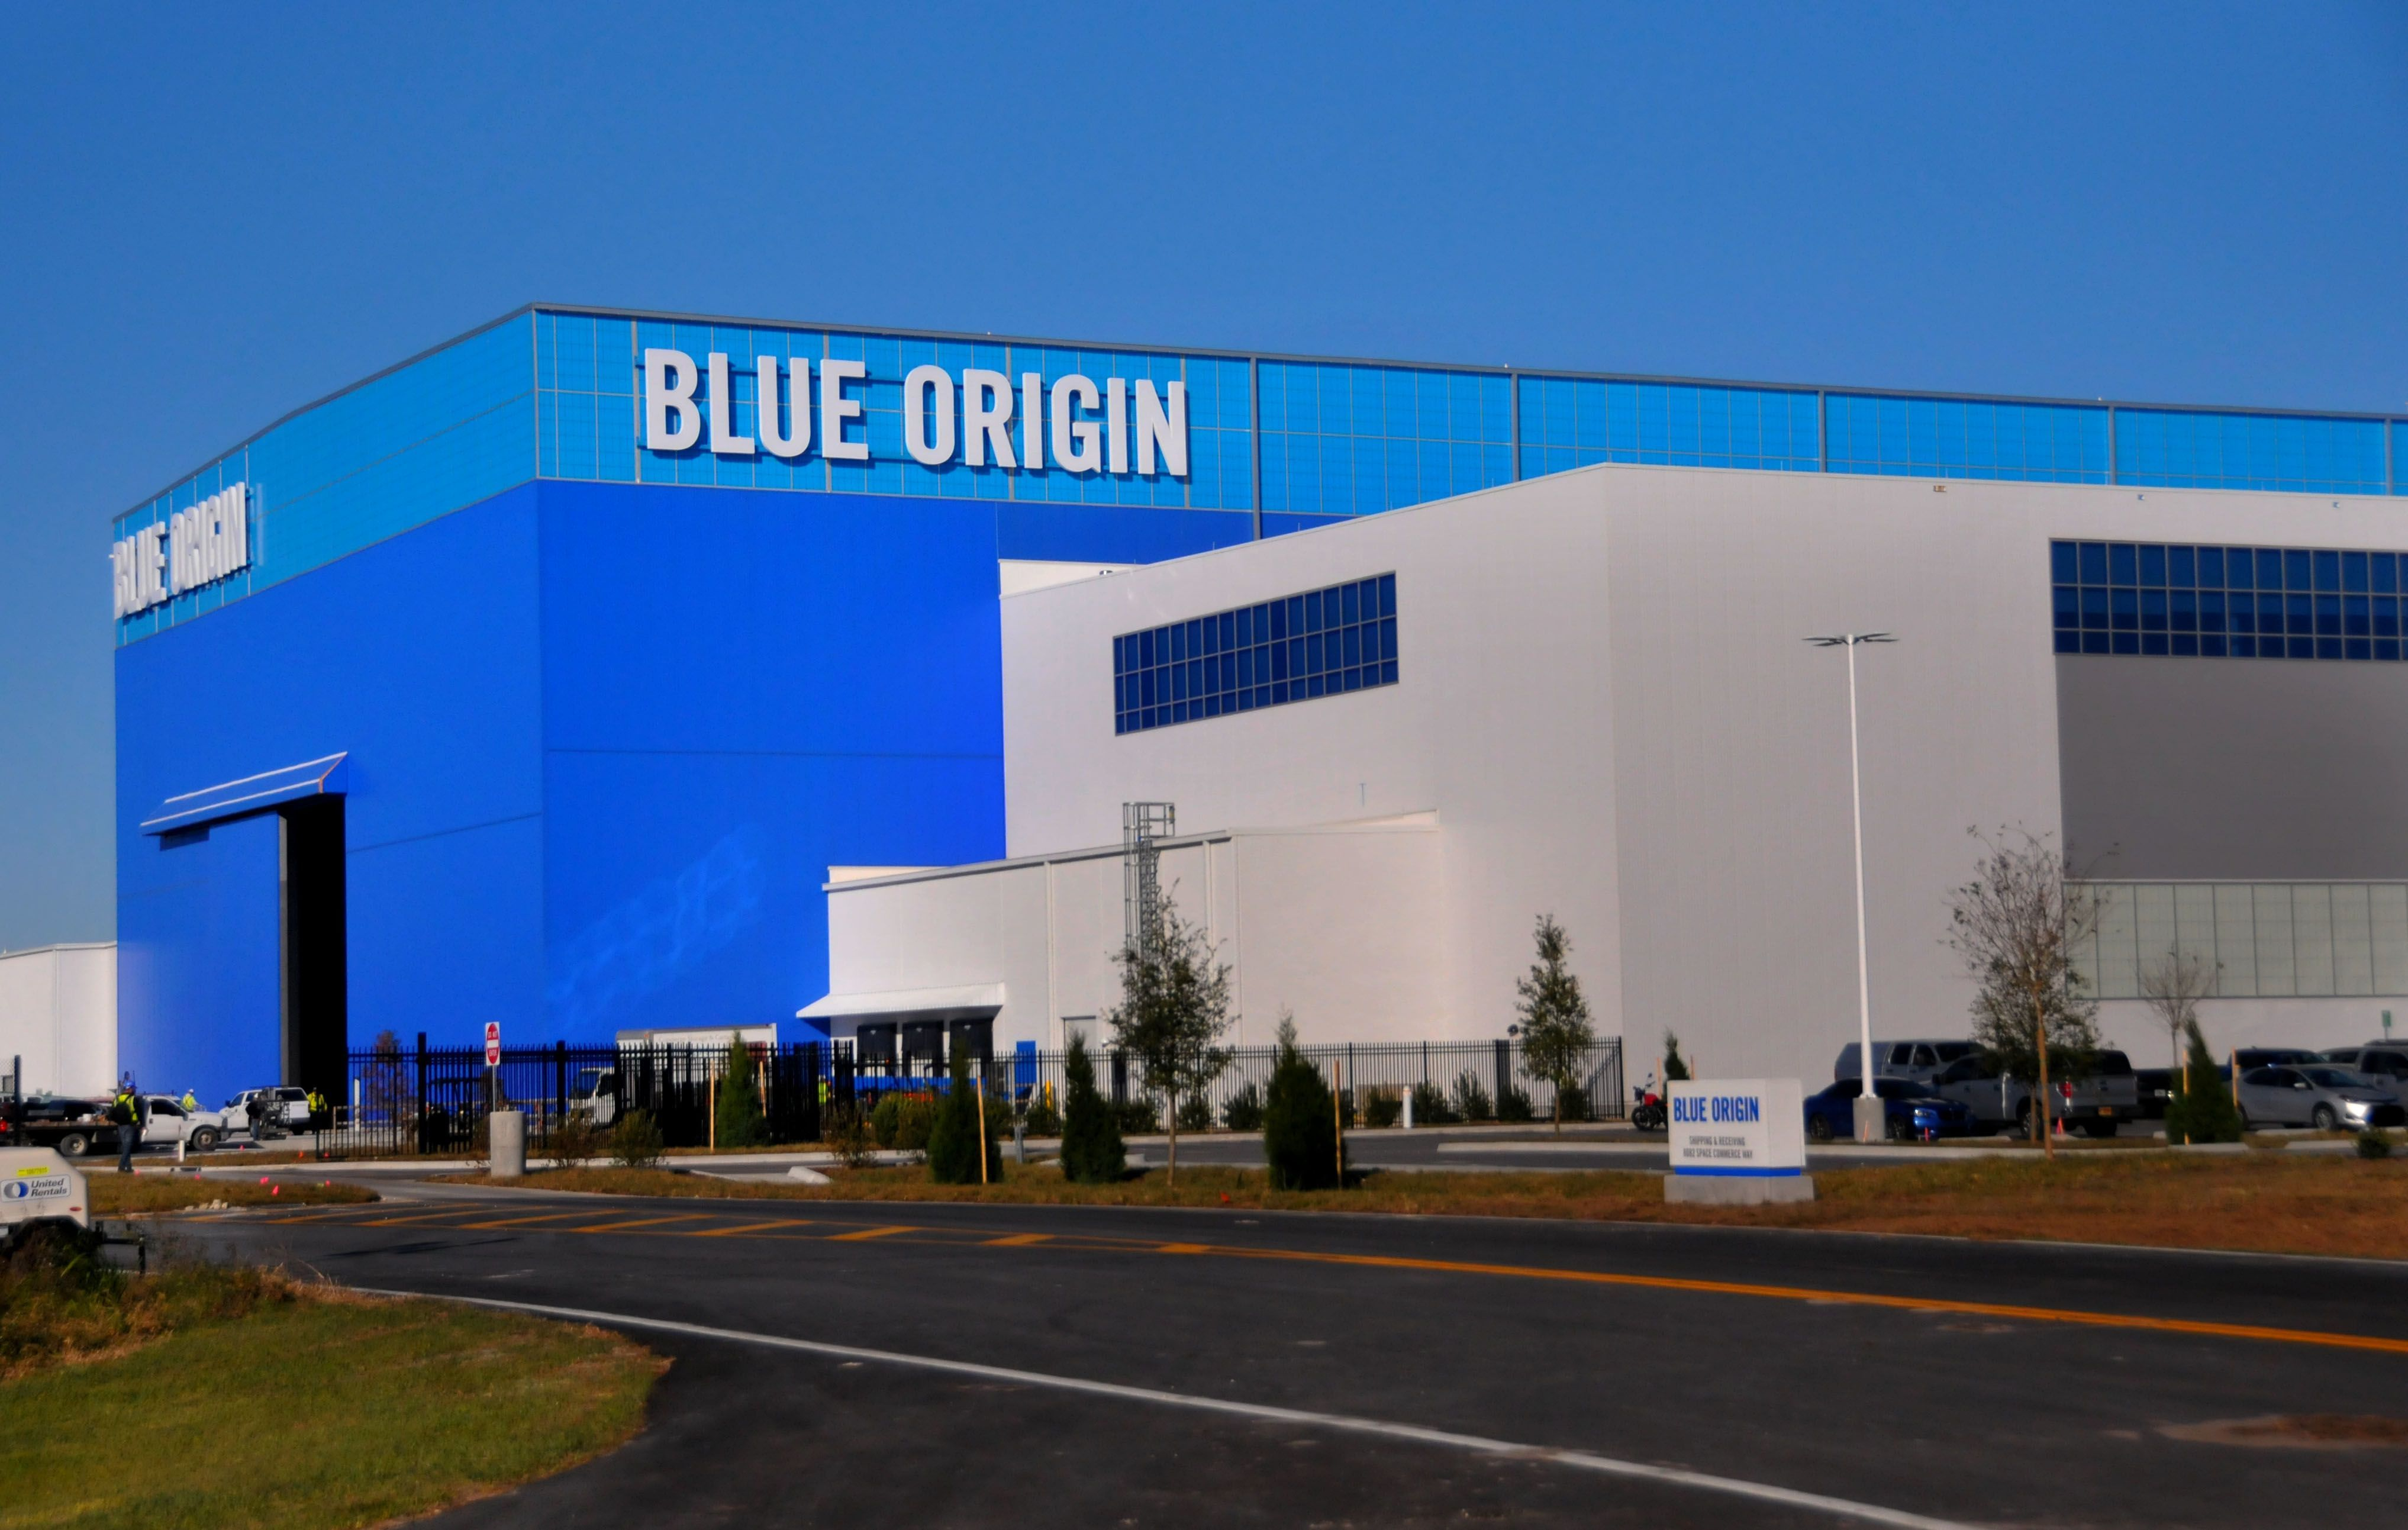 Blue Origin's New Glenn rocket factory at Kennedy Space Center's Exploration Park.